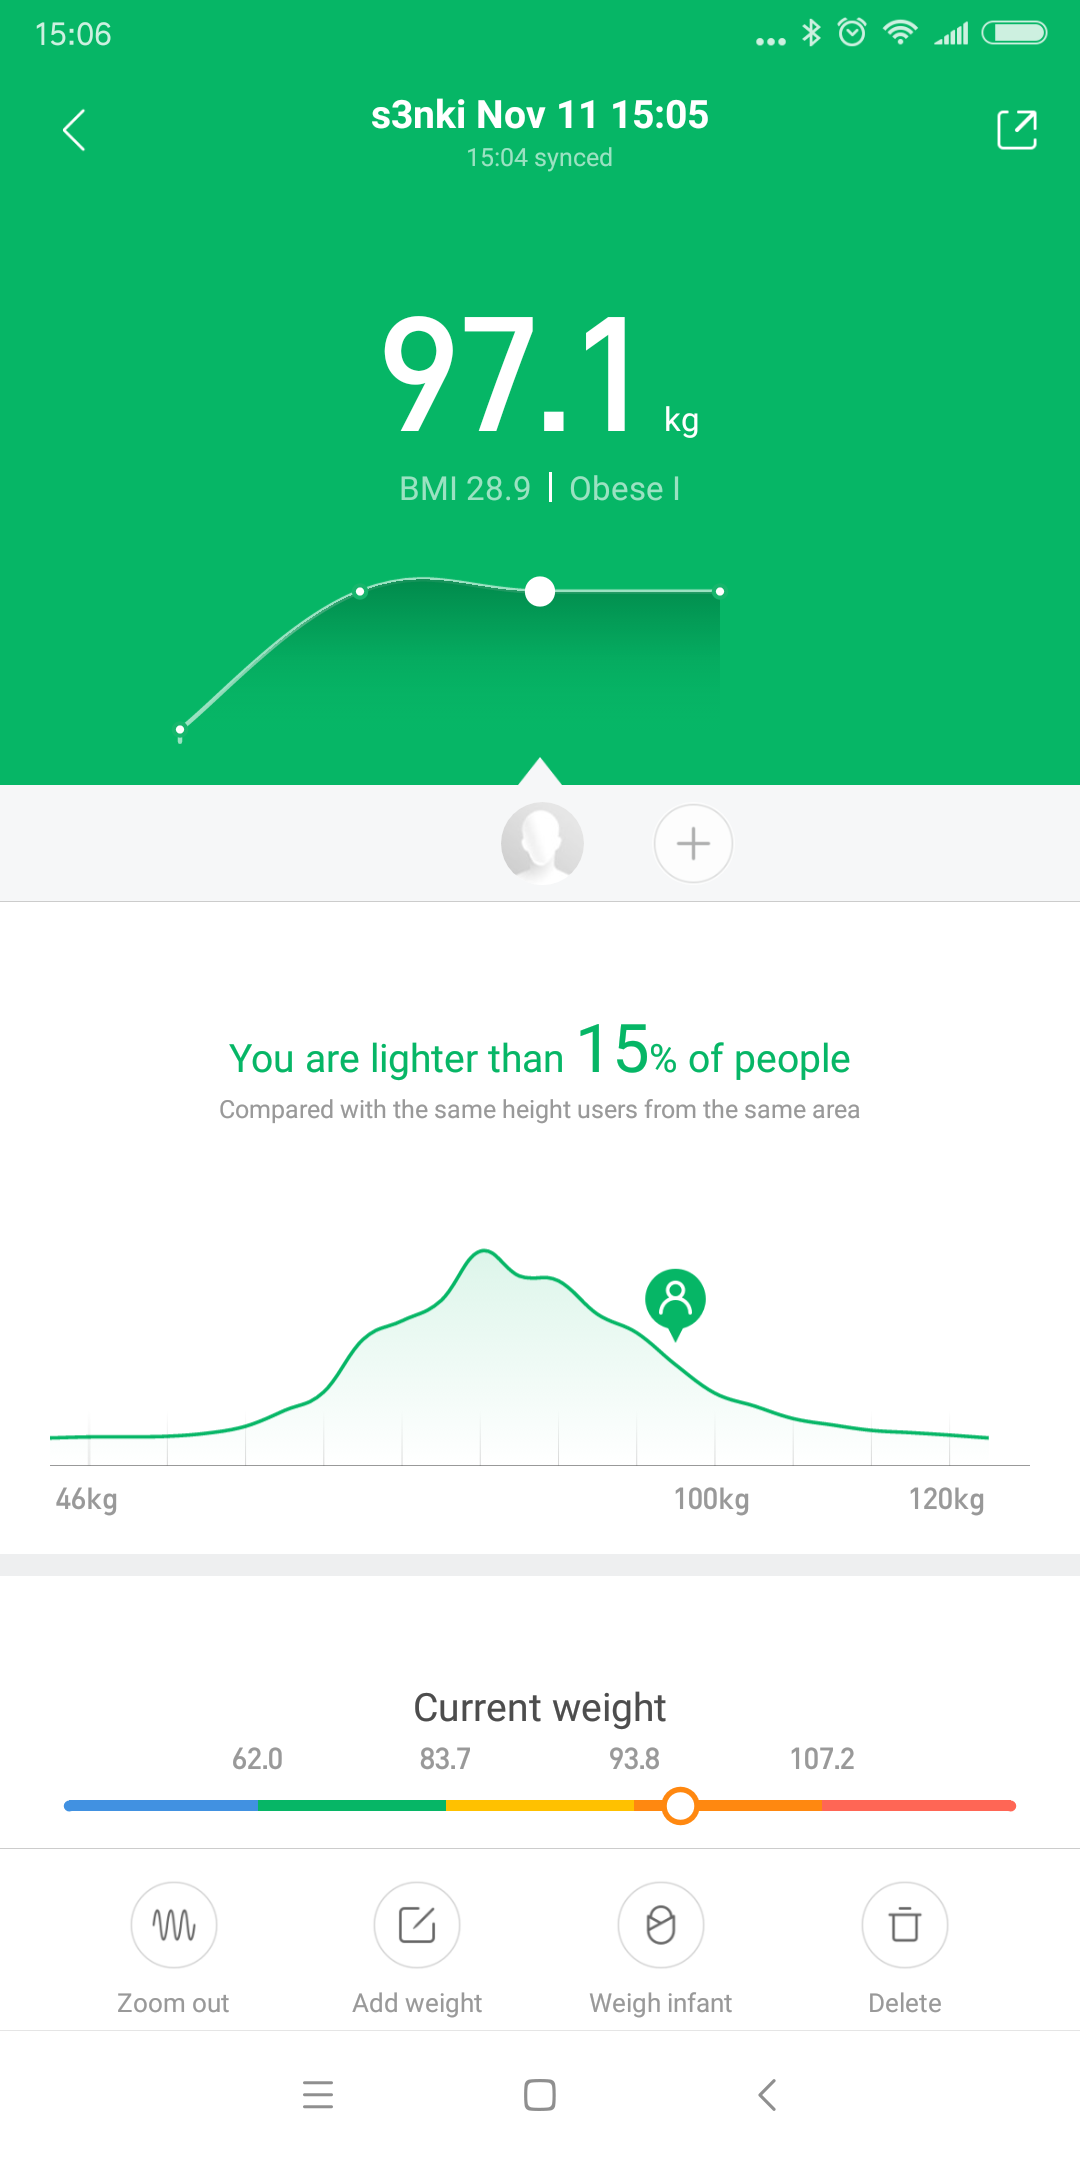 screenshot_2017-11-11-15-06-57-248_com_xiaomi_hm_health.png